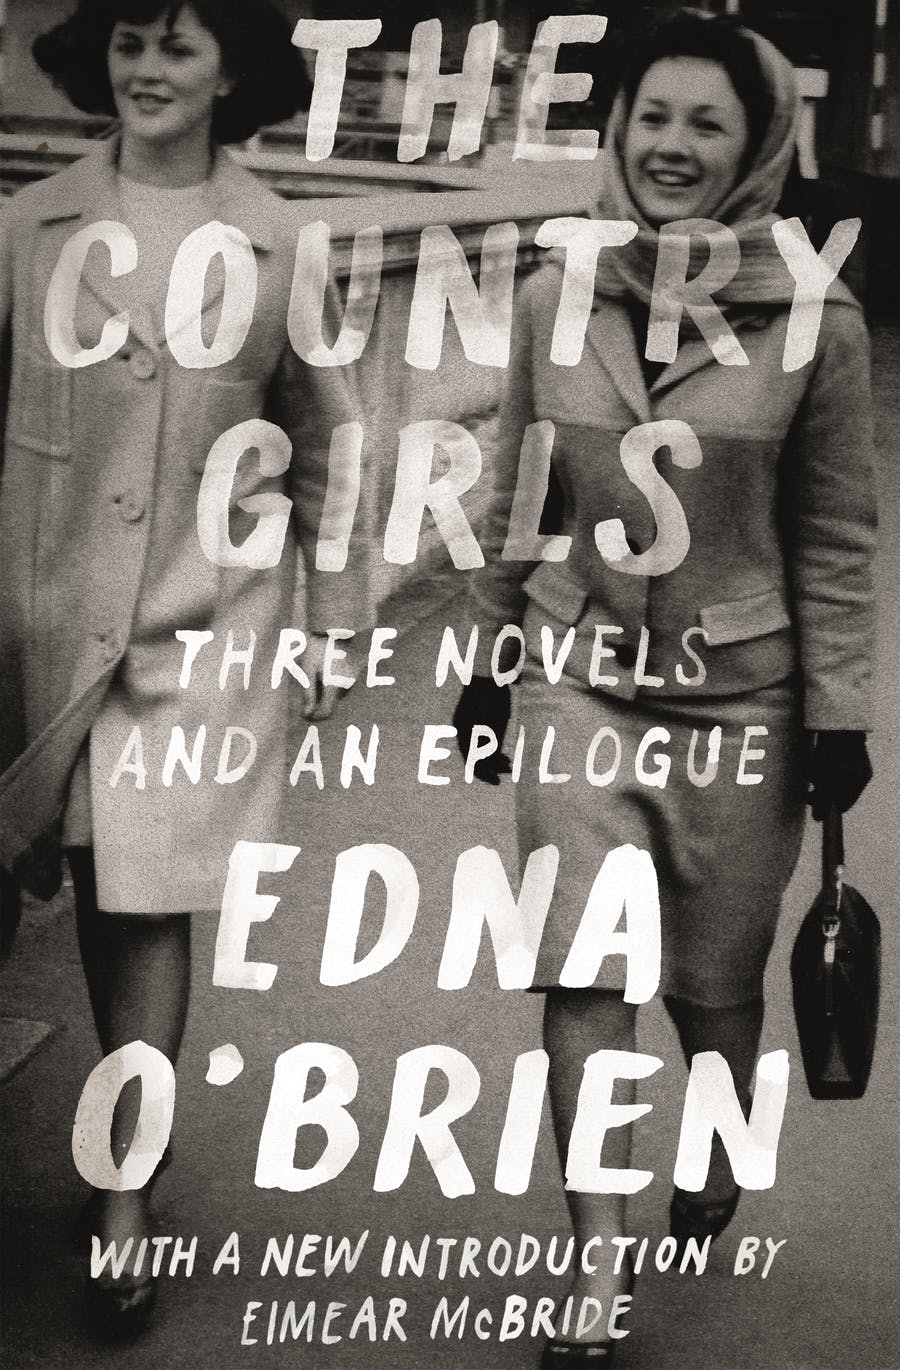 The Country Girls Trilogy by Edna O'Brien; With a new introduction by Eimear McBride